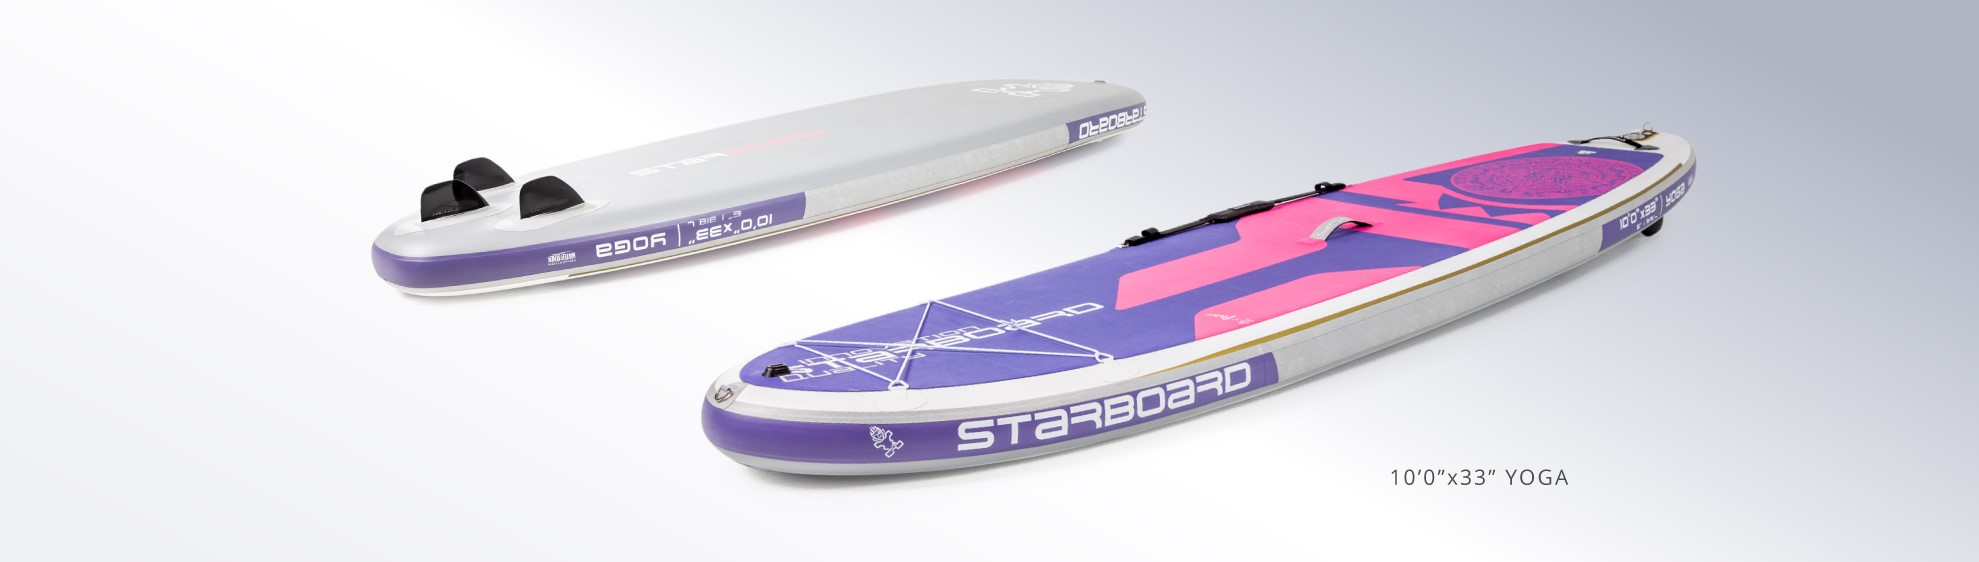 Starboard Yoga Inflatable